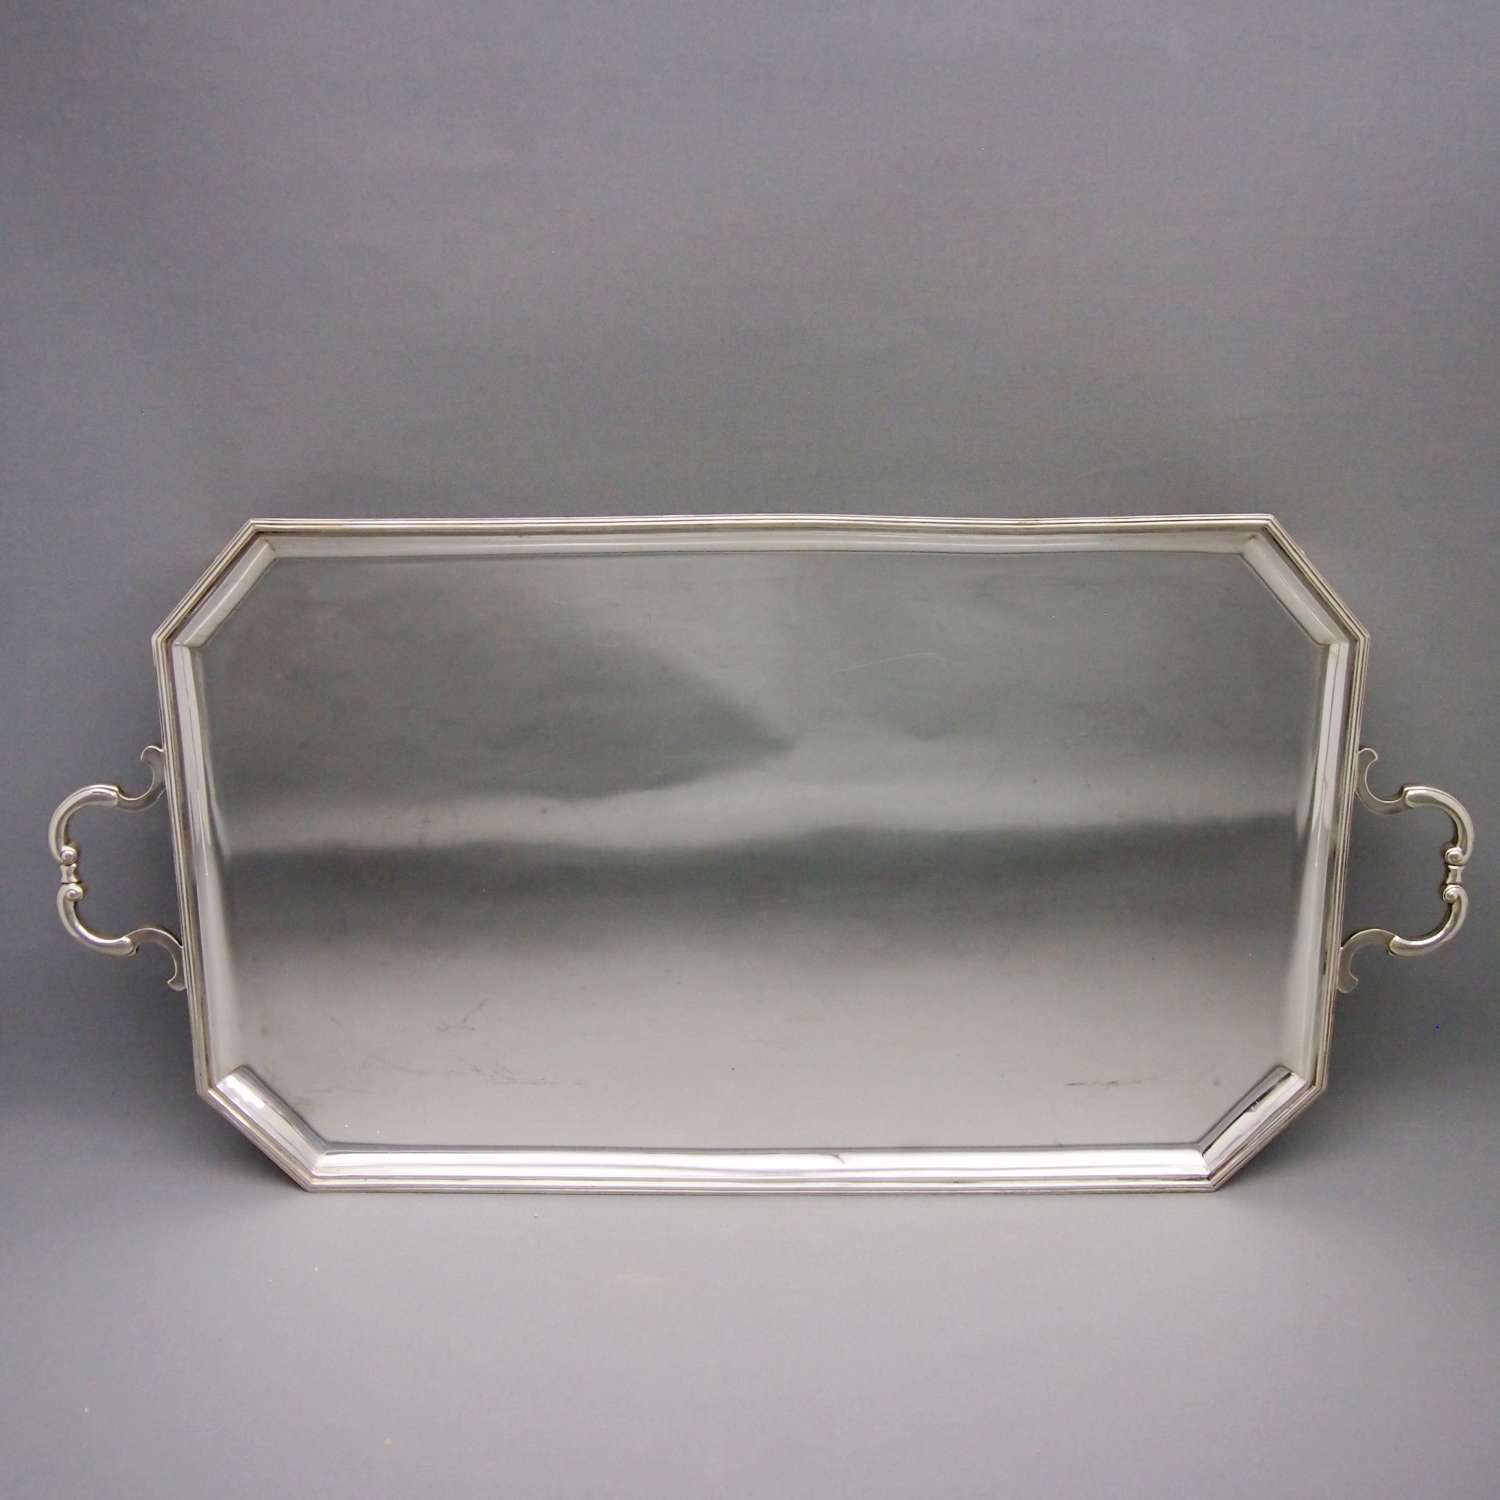 Oblong Good Quality Silver Plated VintageTray W8554